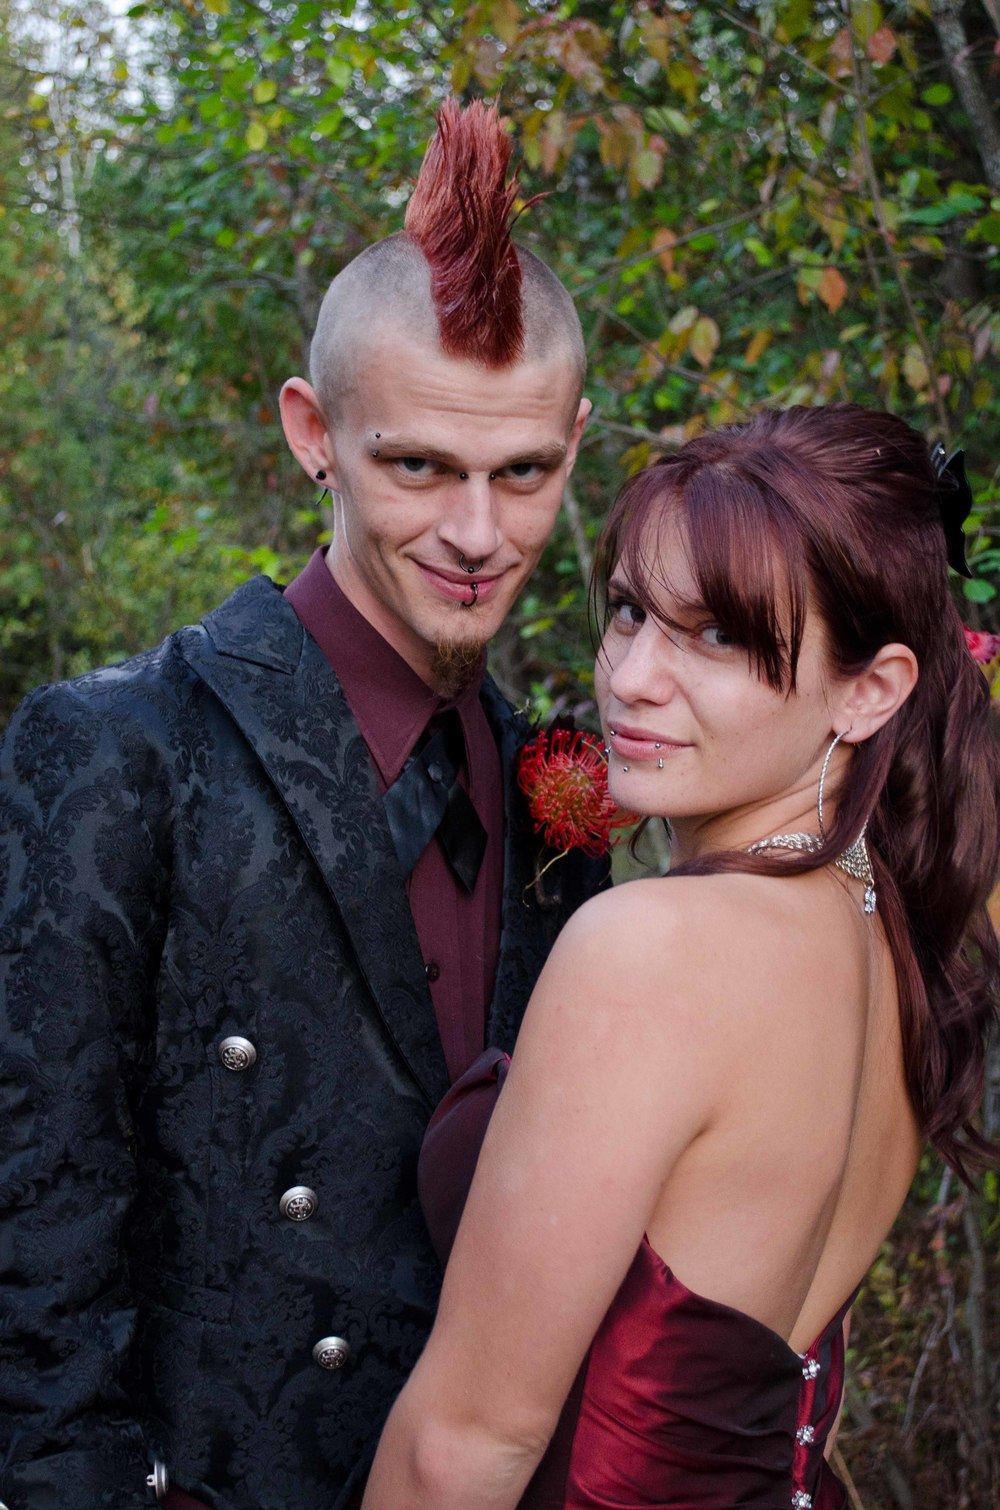 Punk Rock Wedding.